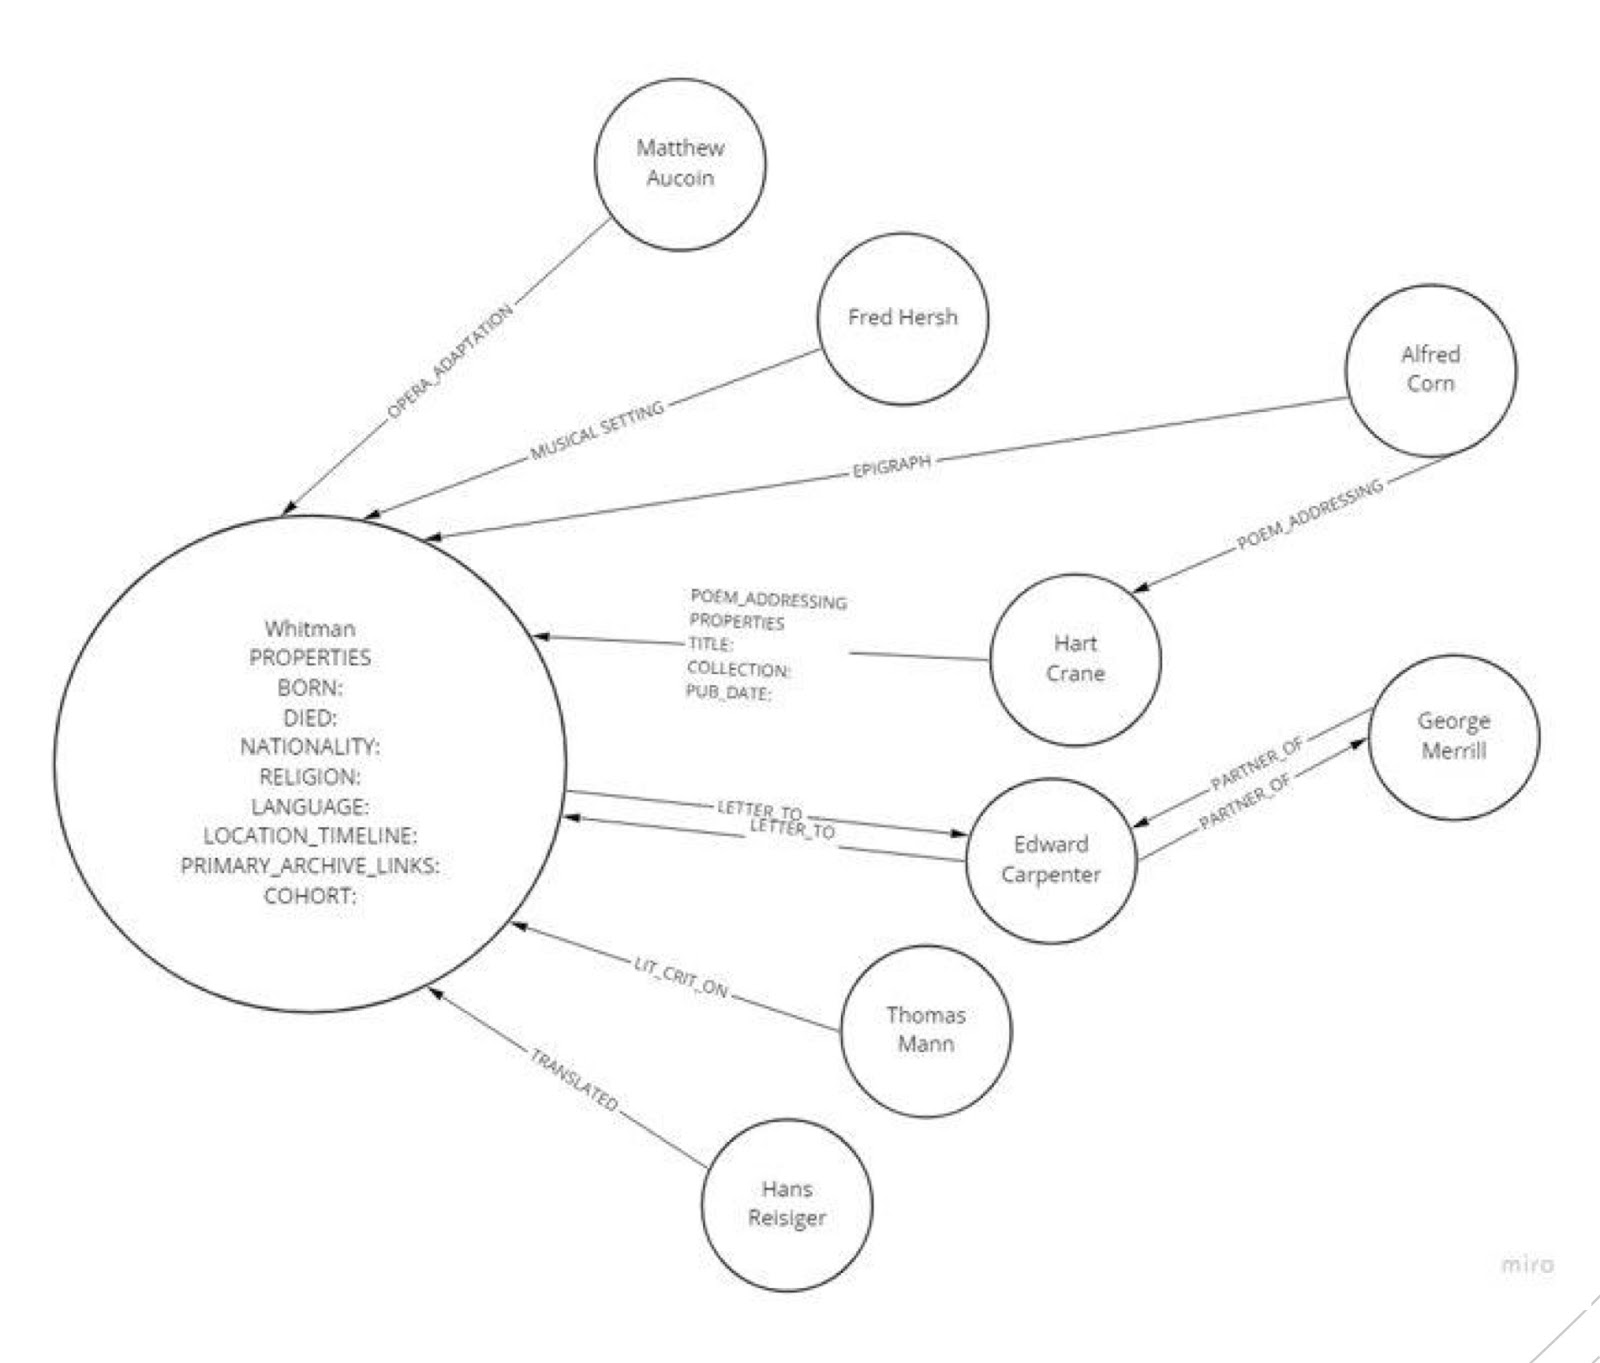 Unearthing Historical Networks Using Neo4j and Archival Documents